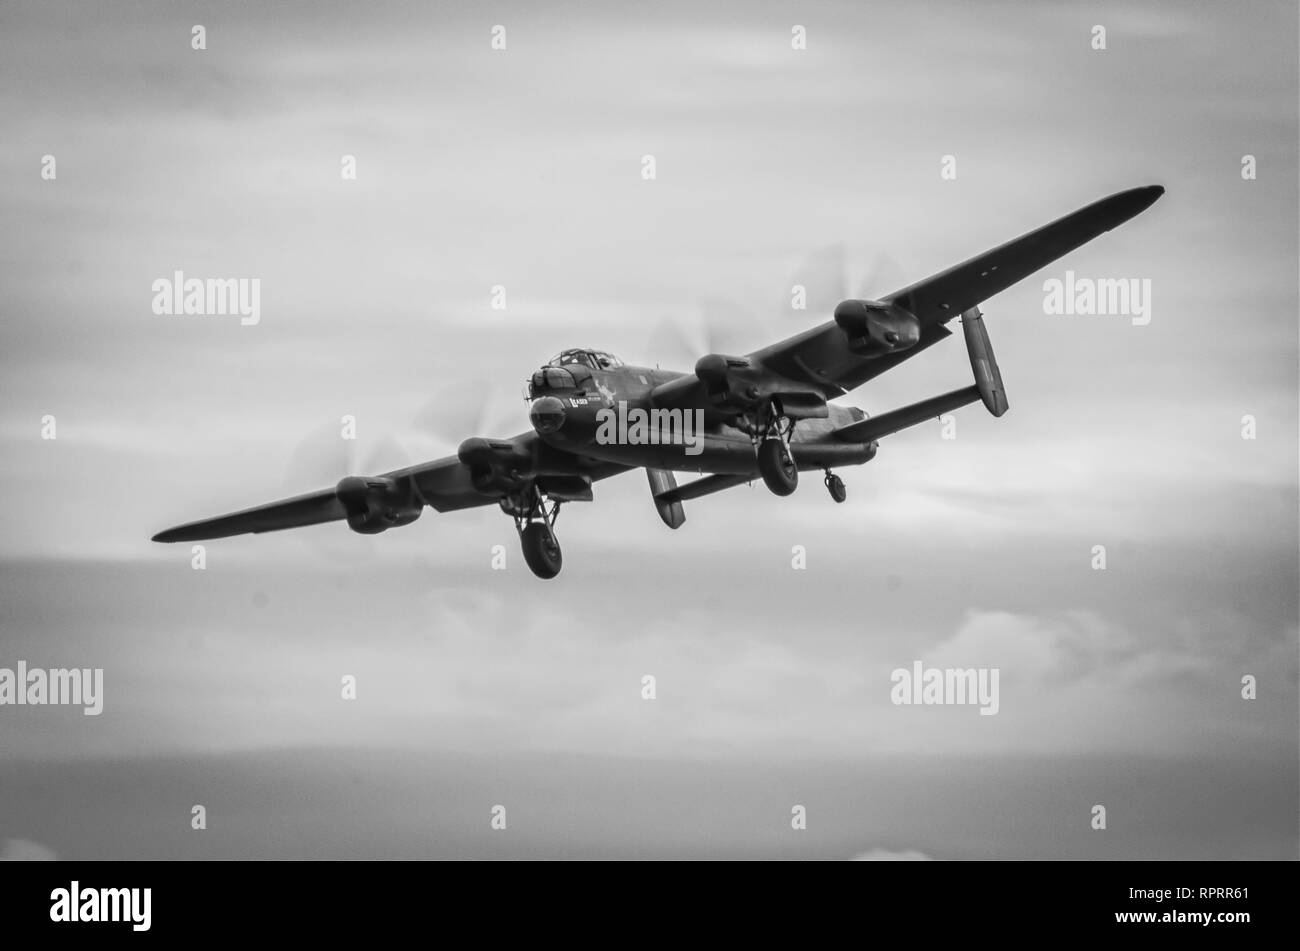 The Avro Lancaster B1 coming into land - Stock Image